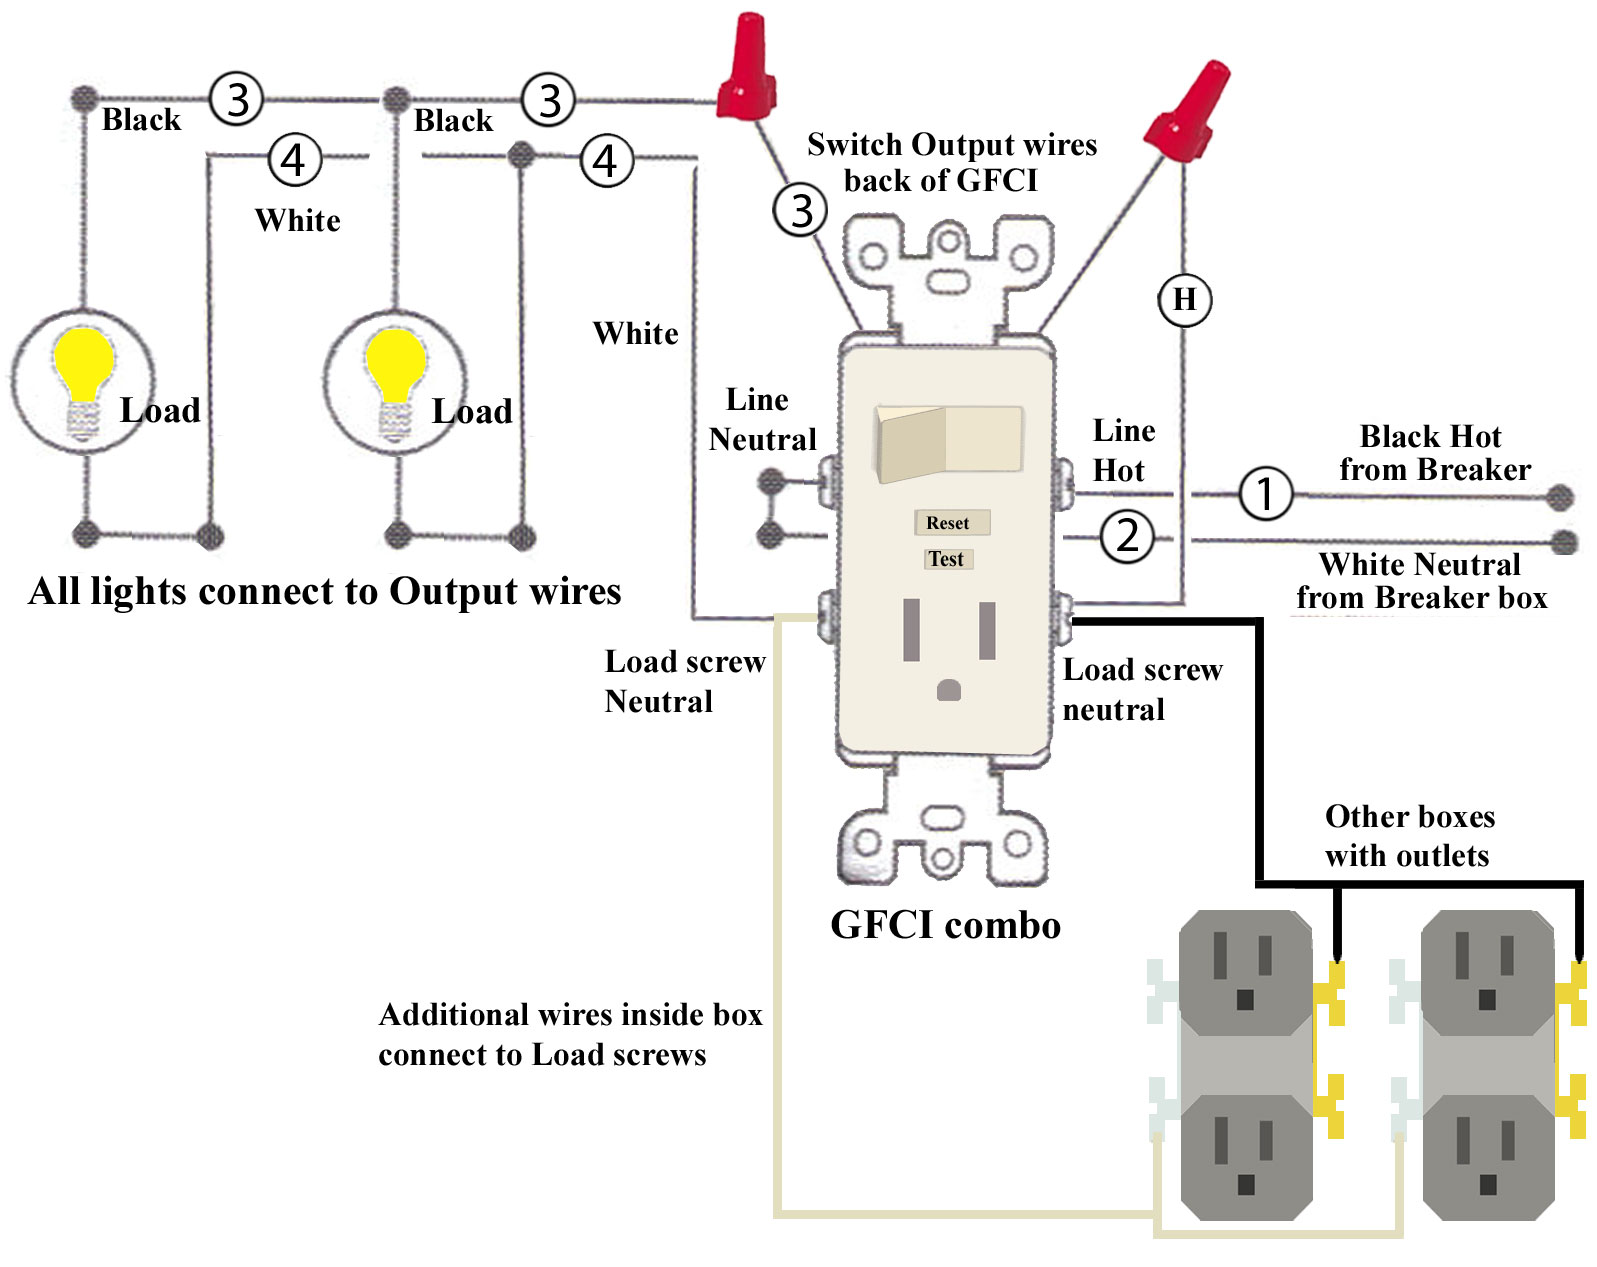 GFCI combo wiring3 update how to install and troubleshoot gfci combination switch wiring diagram at alyssarenee.co